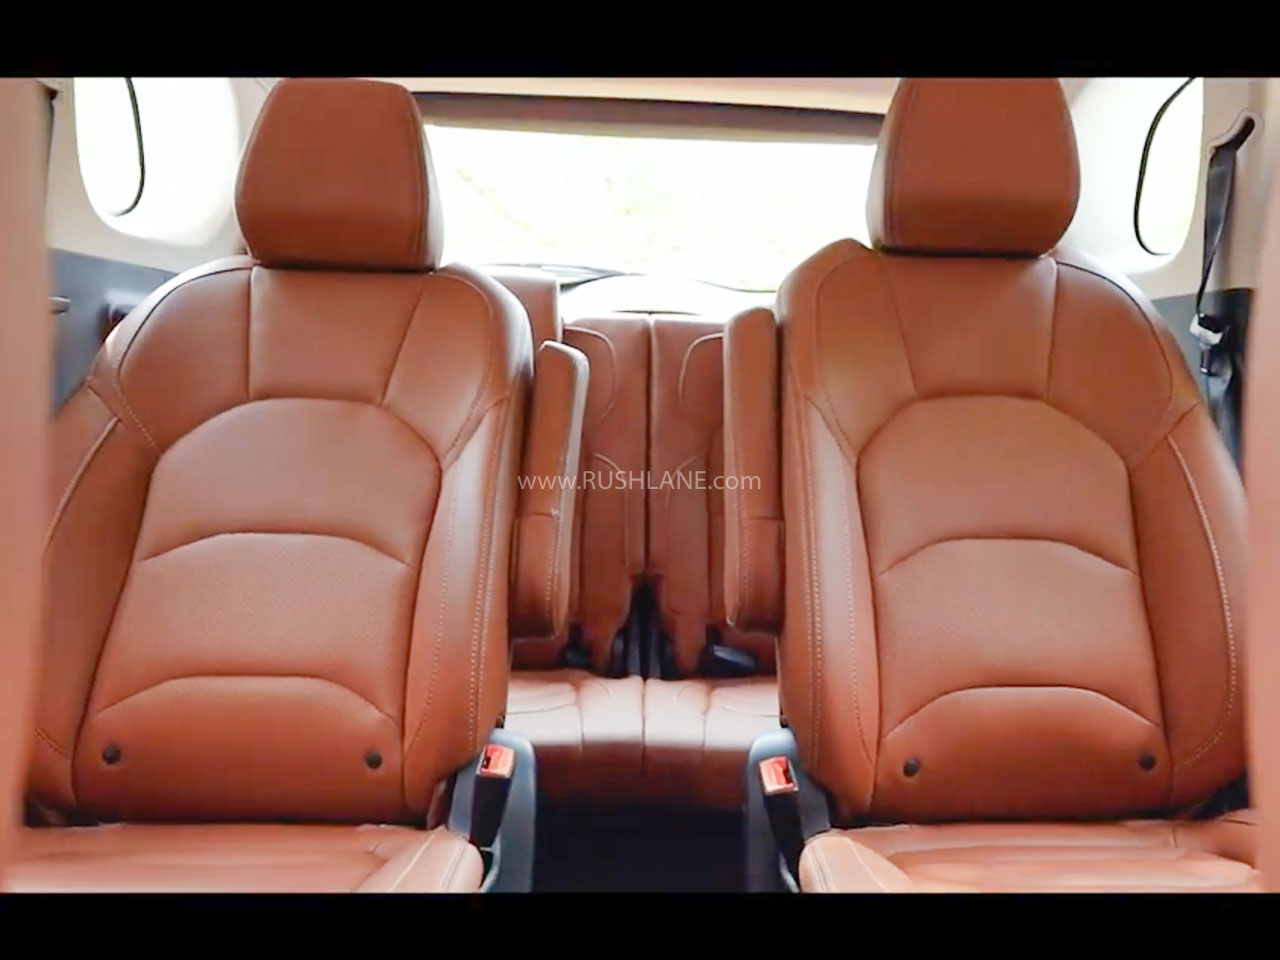 MG Hector Plus Captain Seats in Brown Leather – Teaser Video